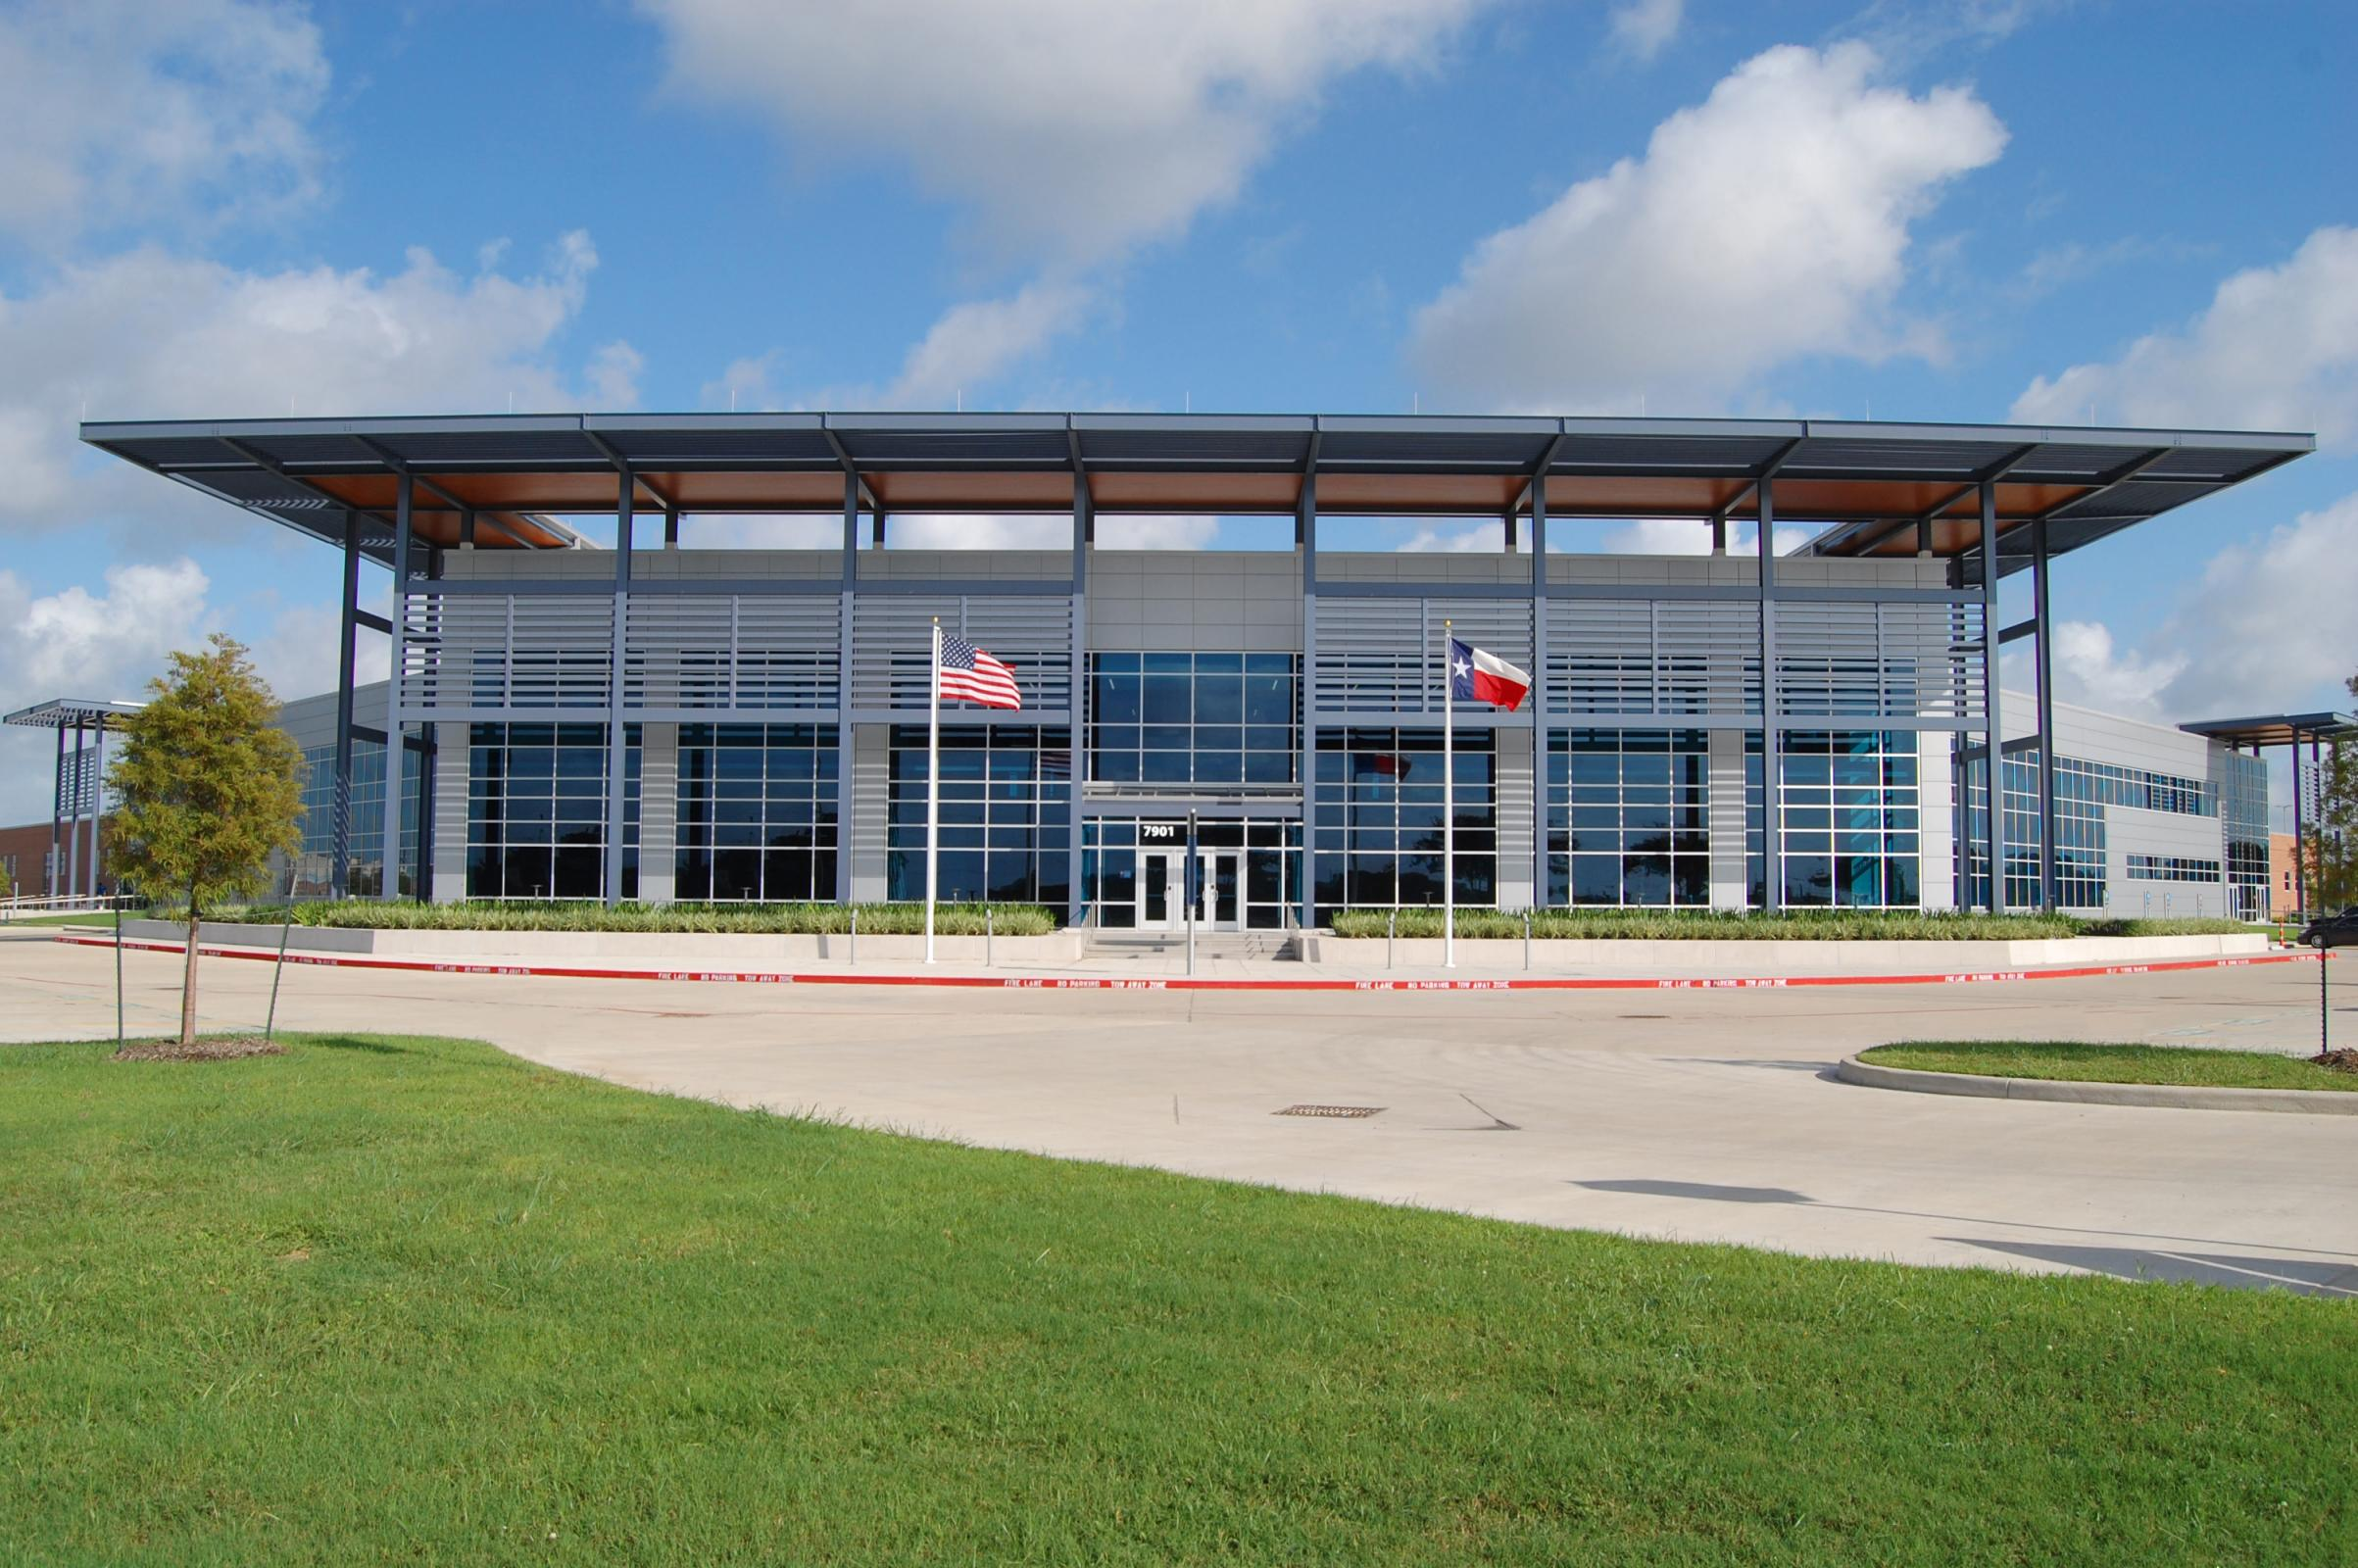 SAN JACINTO COLLEGE OPENS LYONDELLBASELL CENTER FOR PETROCHEMICAL, ENERGY, & TECHNOLOGY Image